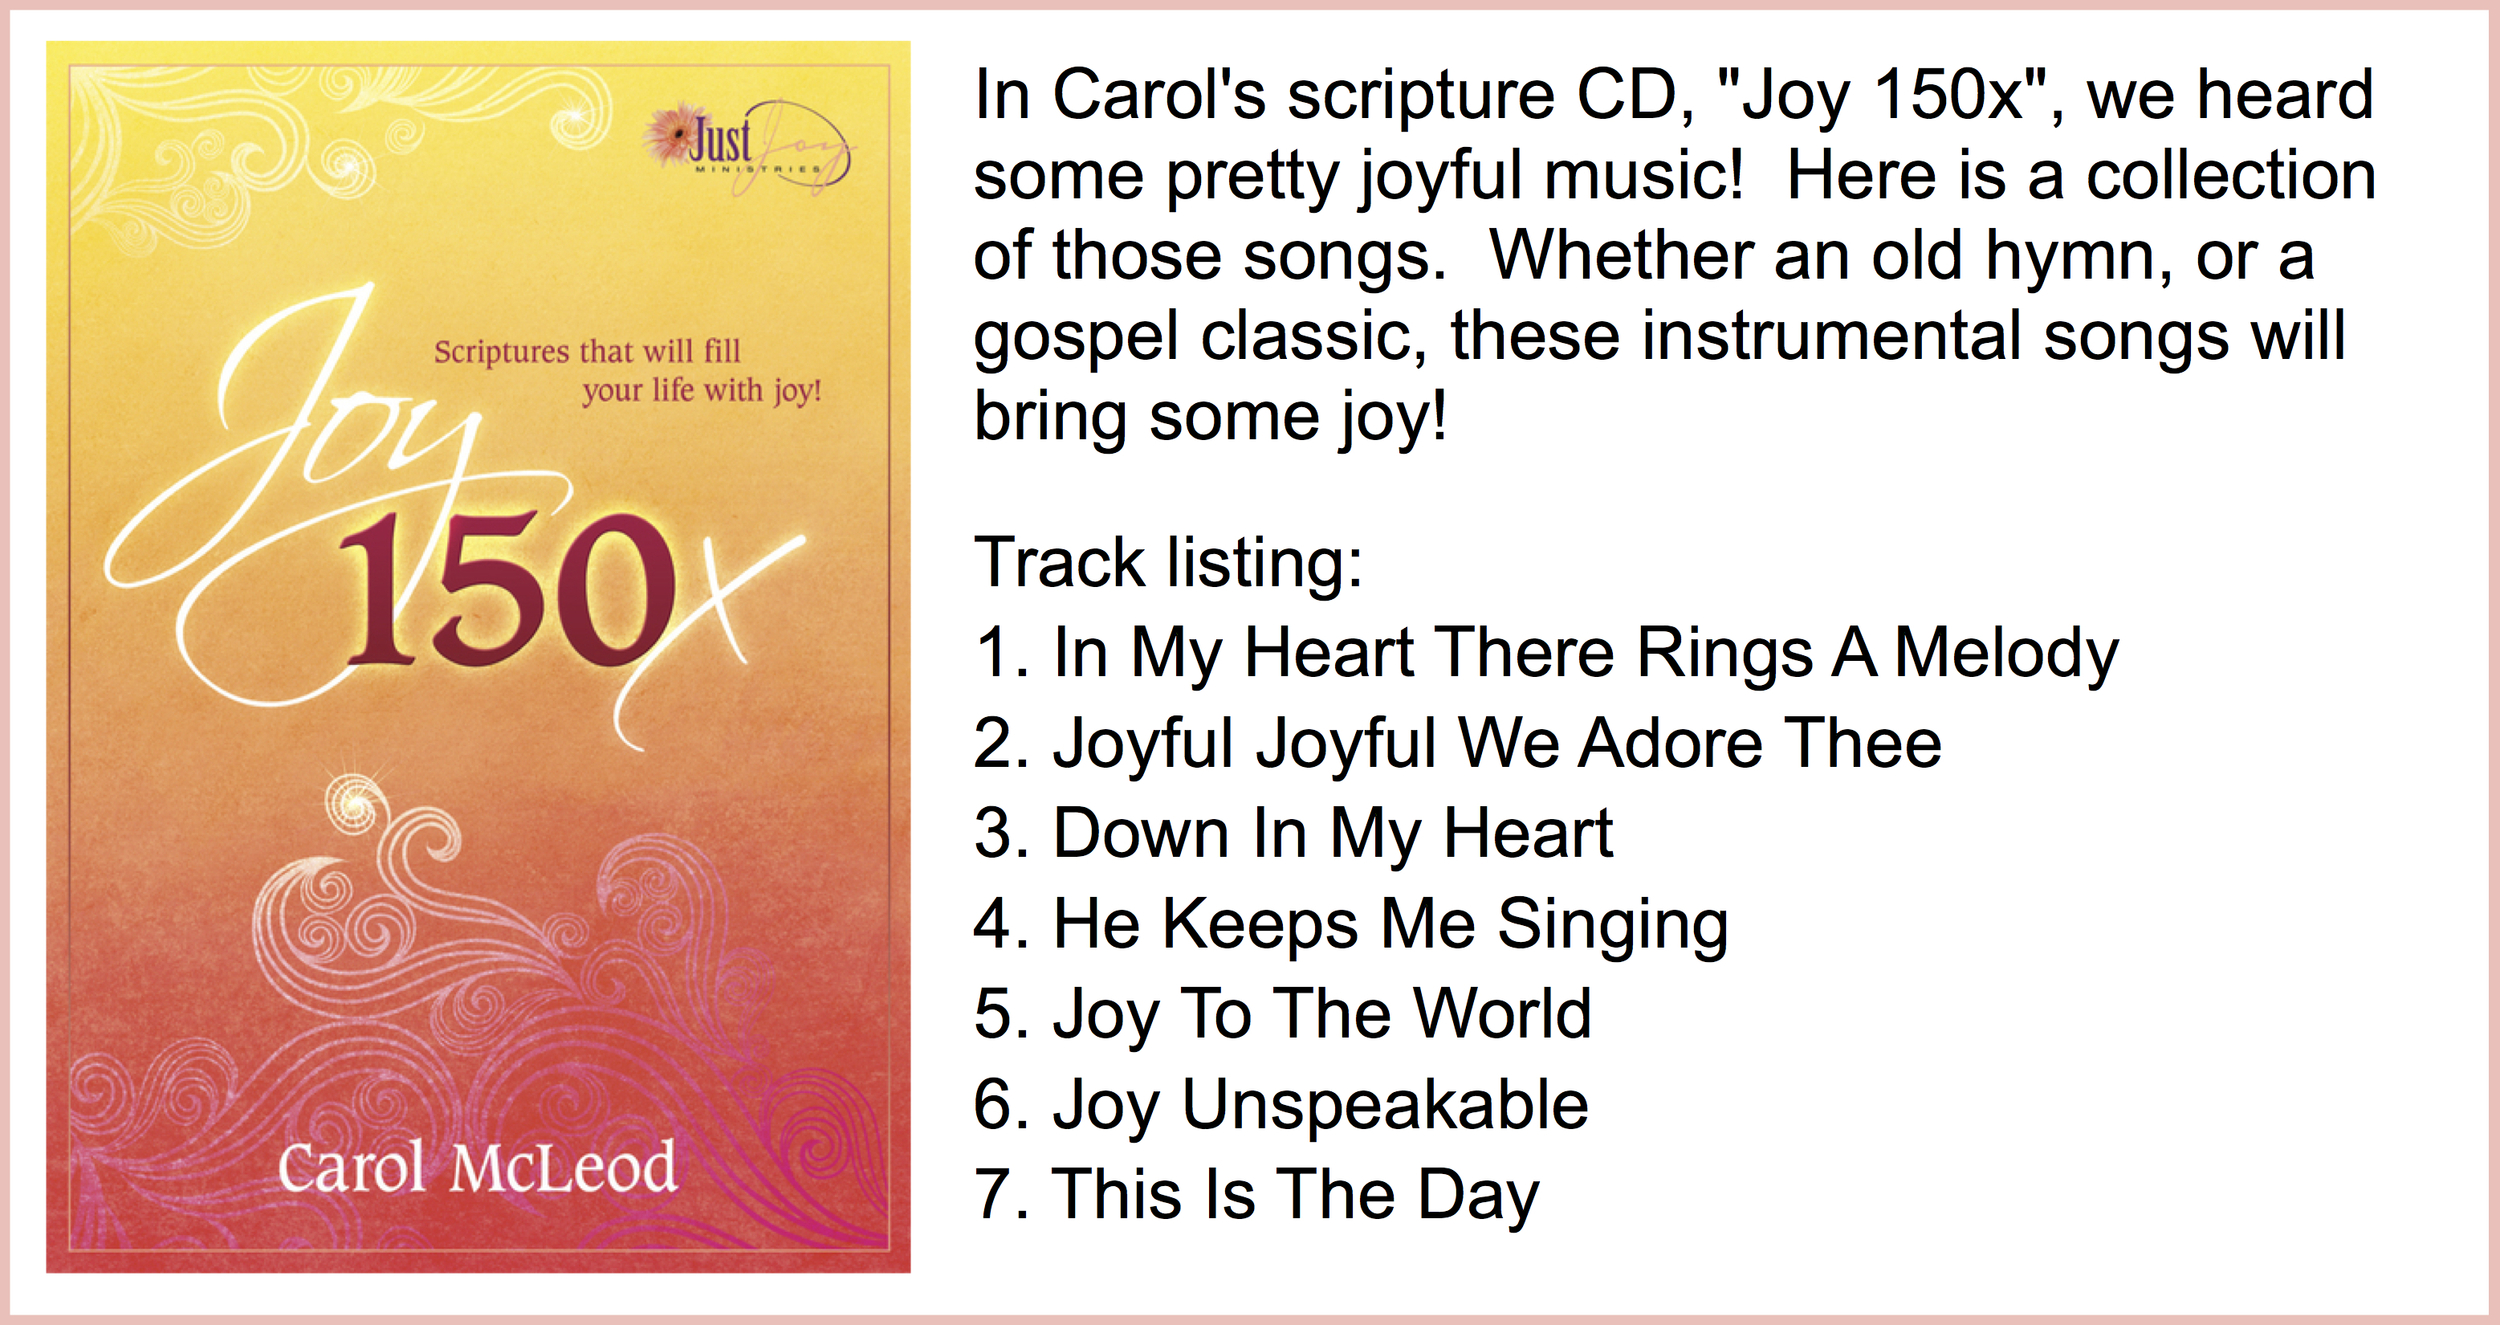 Music from Joy 150x Download - $5